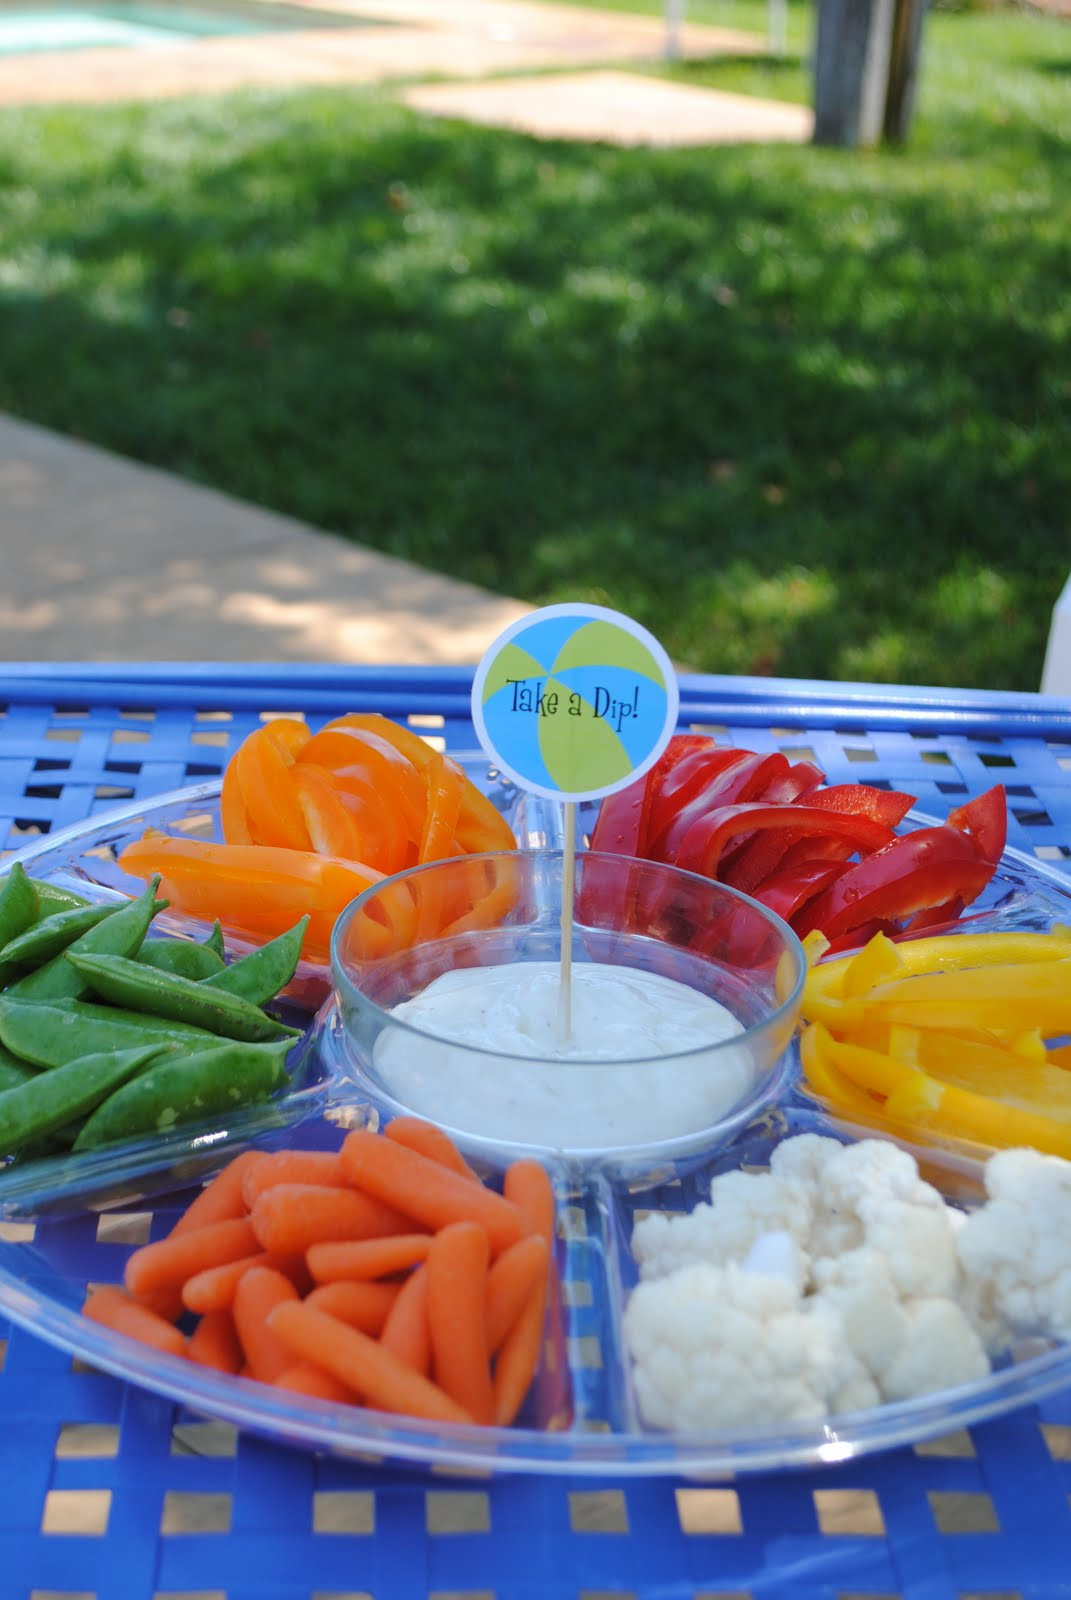 Pool Party Snack Ideas  Jac o lyn Murphy Pool Party Dips Drinks and Swim Snacks